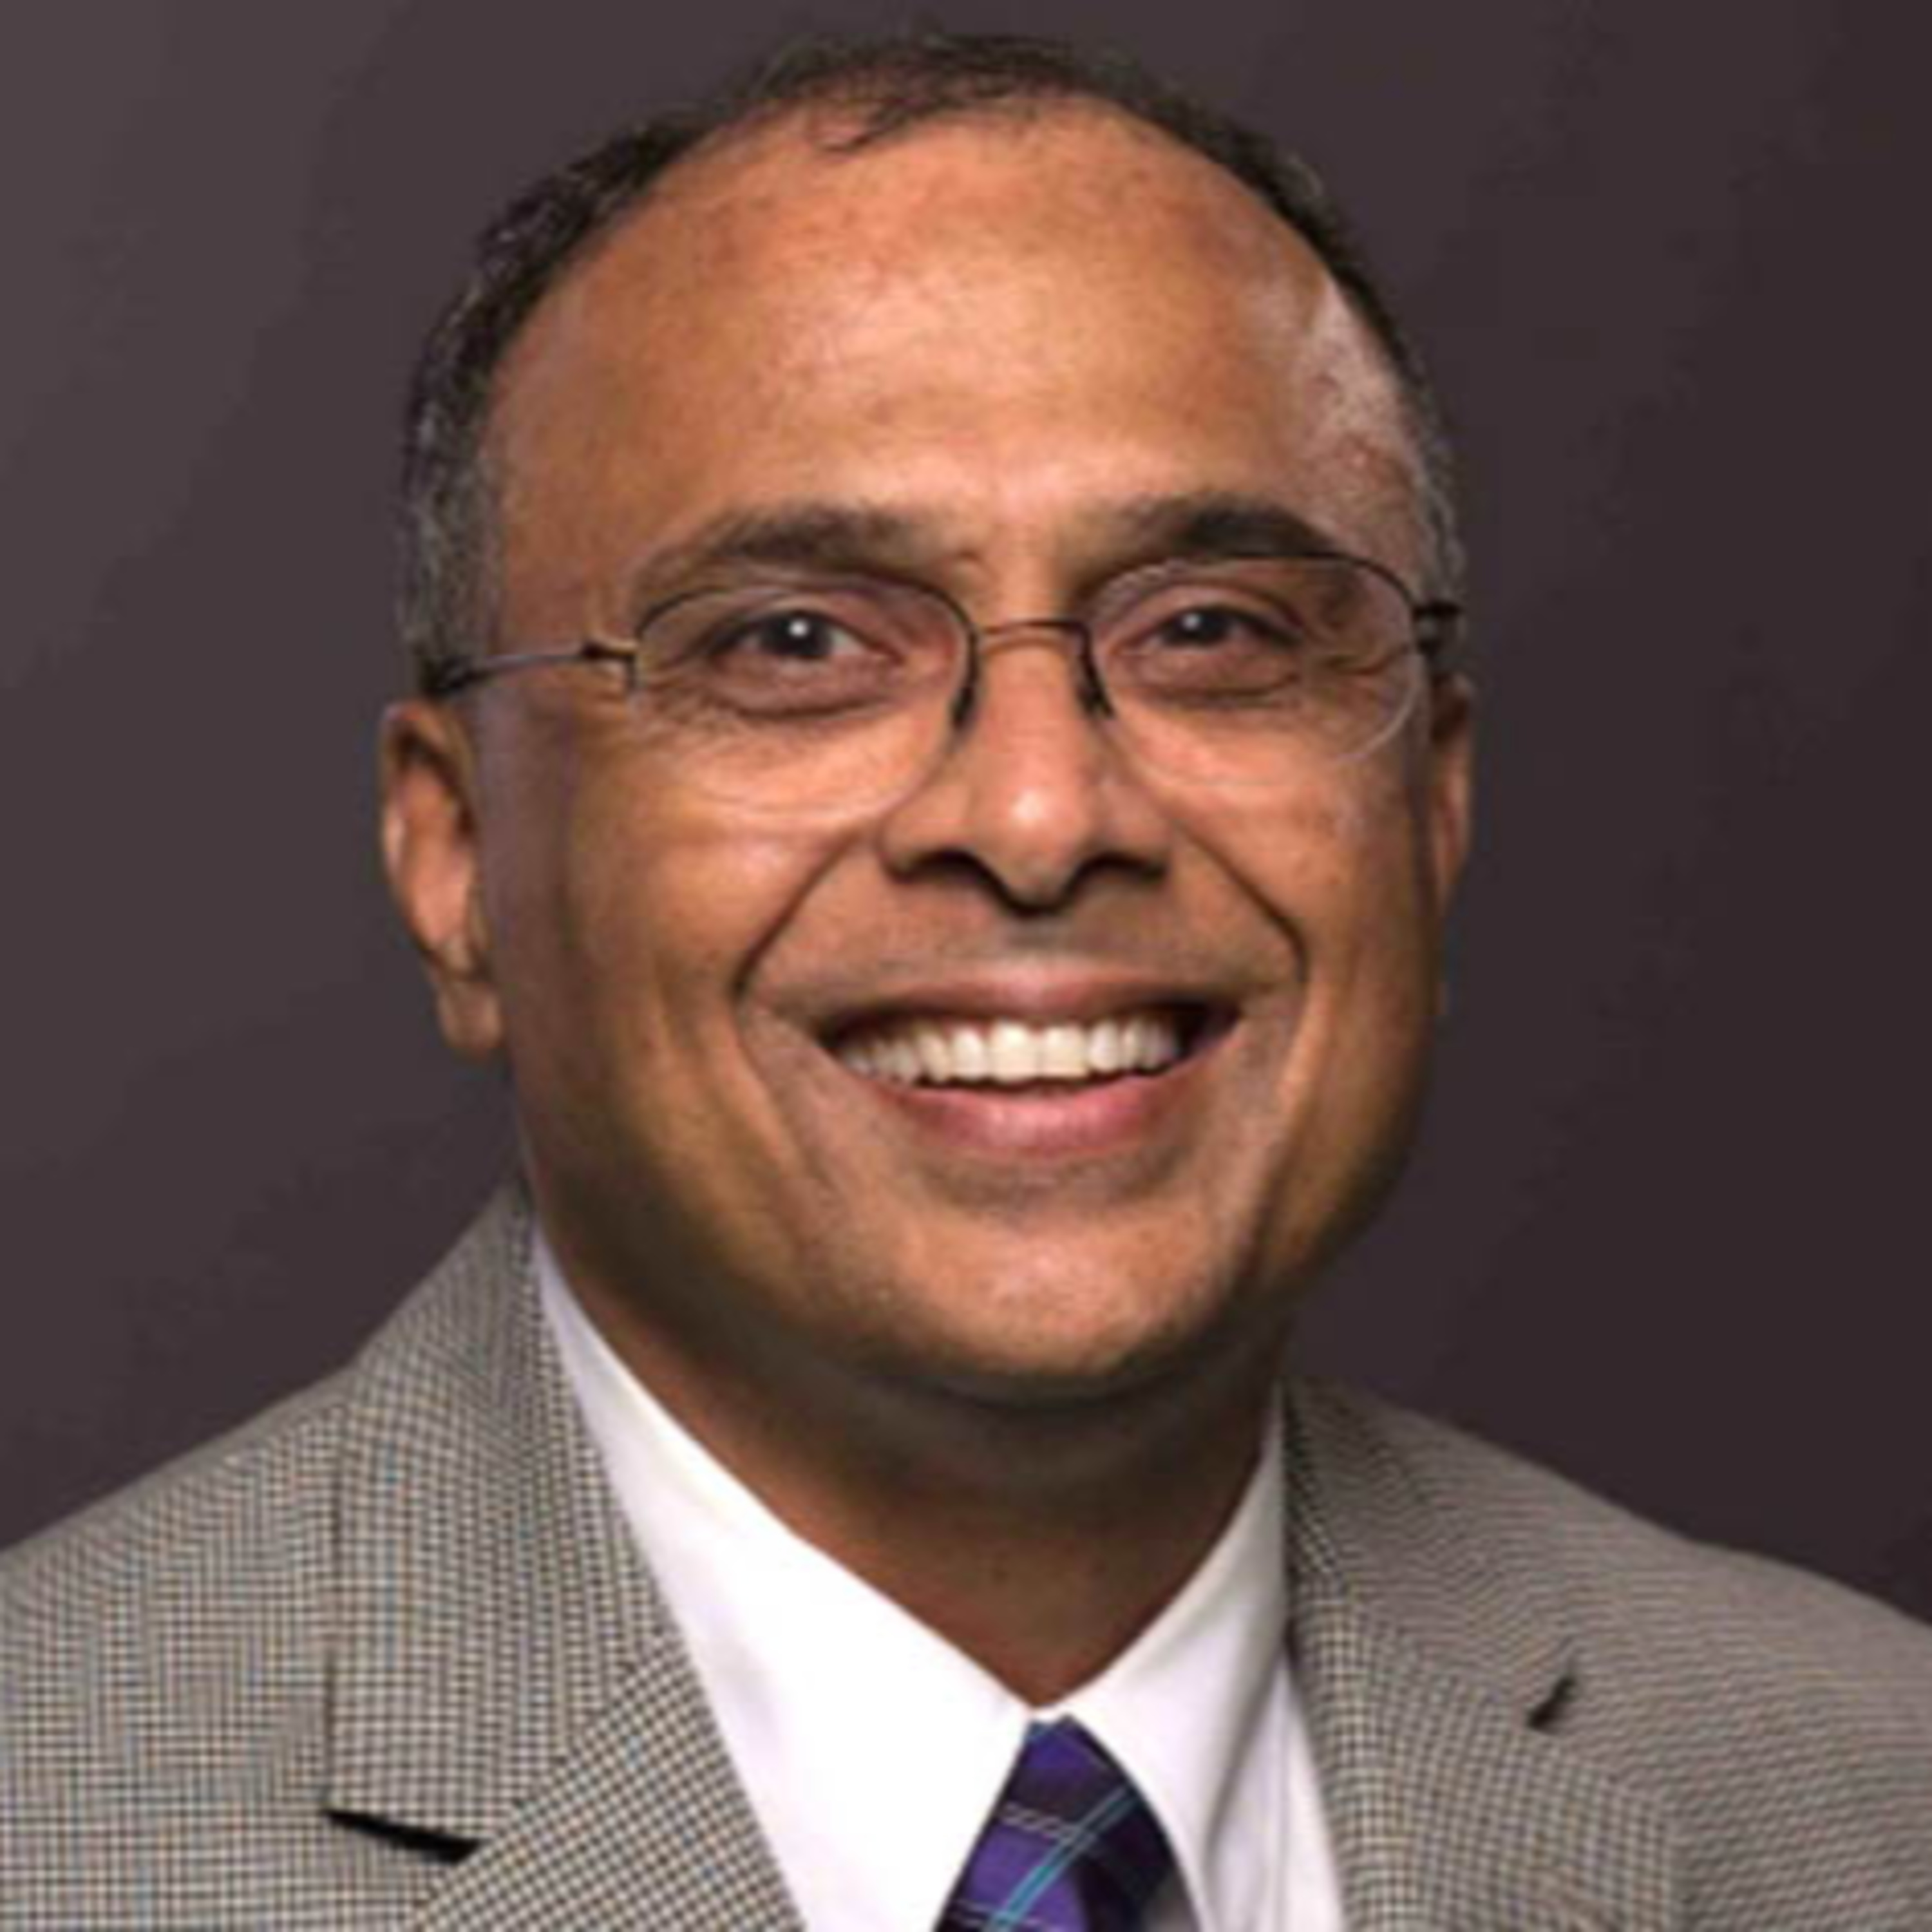 How and why become CTO of Juniper Networks - Raj Yavatkar, CTO @ Juniper Networks